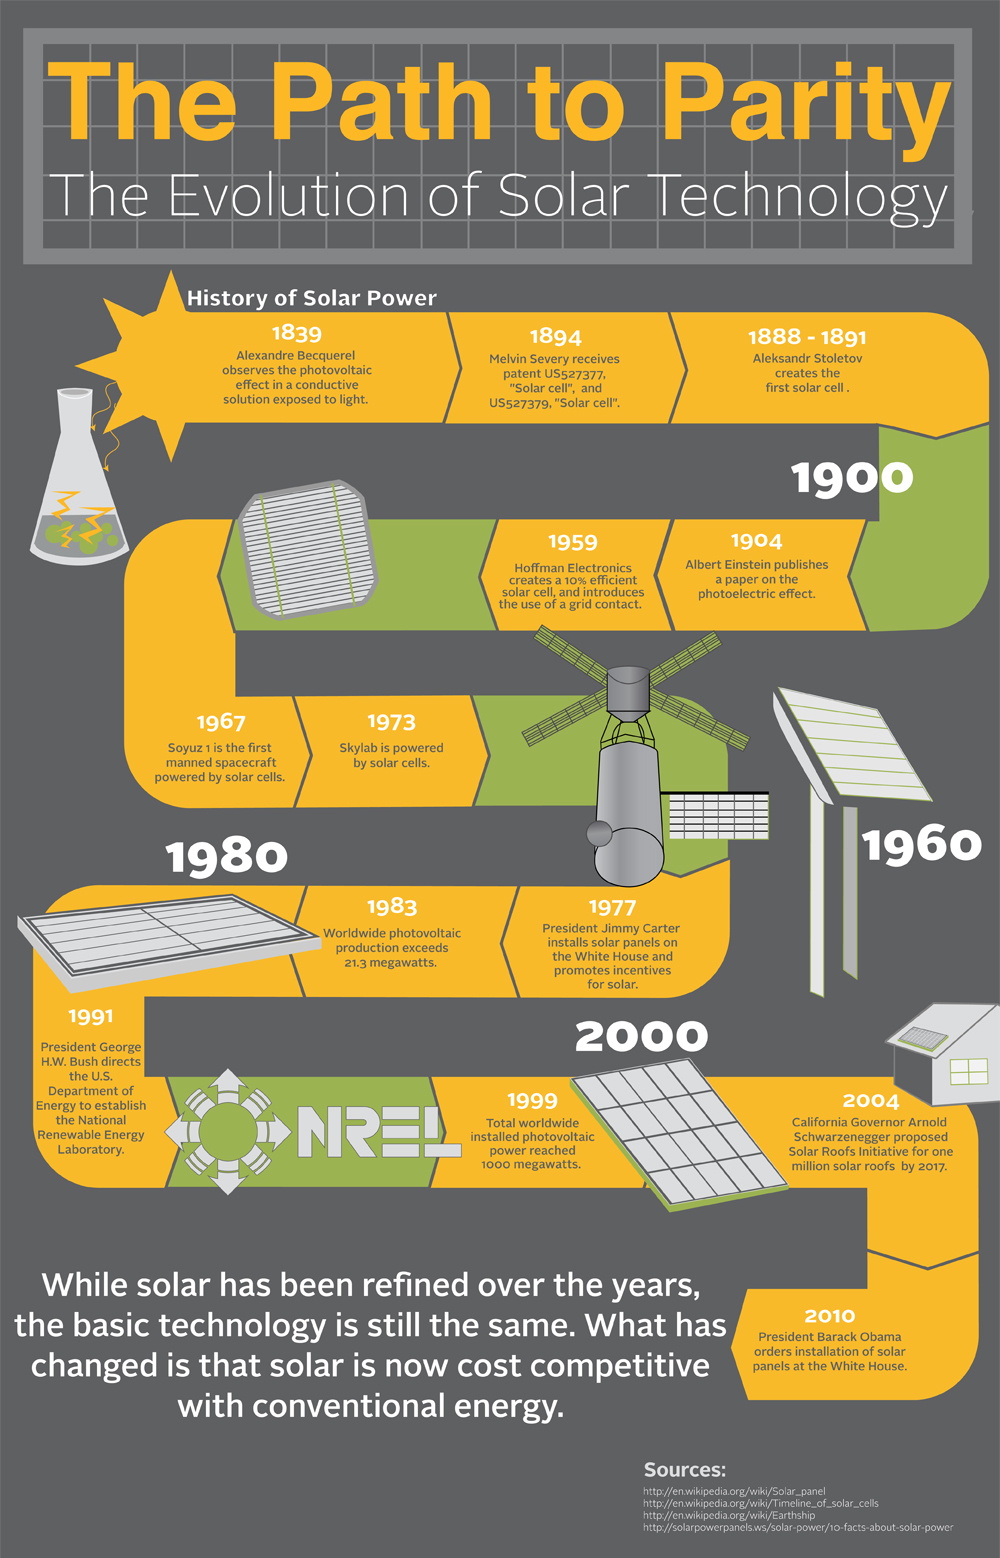 Solar Energy Cost So Low Thanks To Decades Of R Amp D